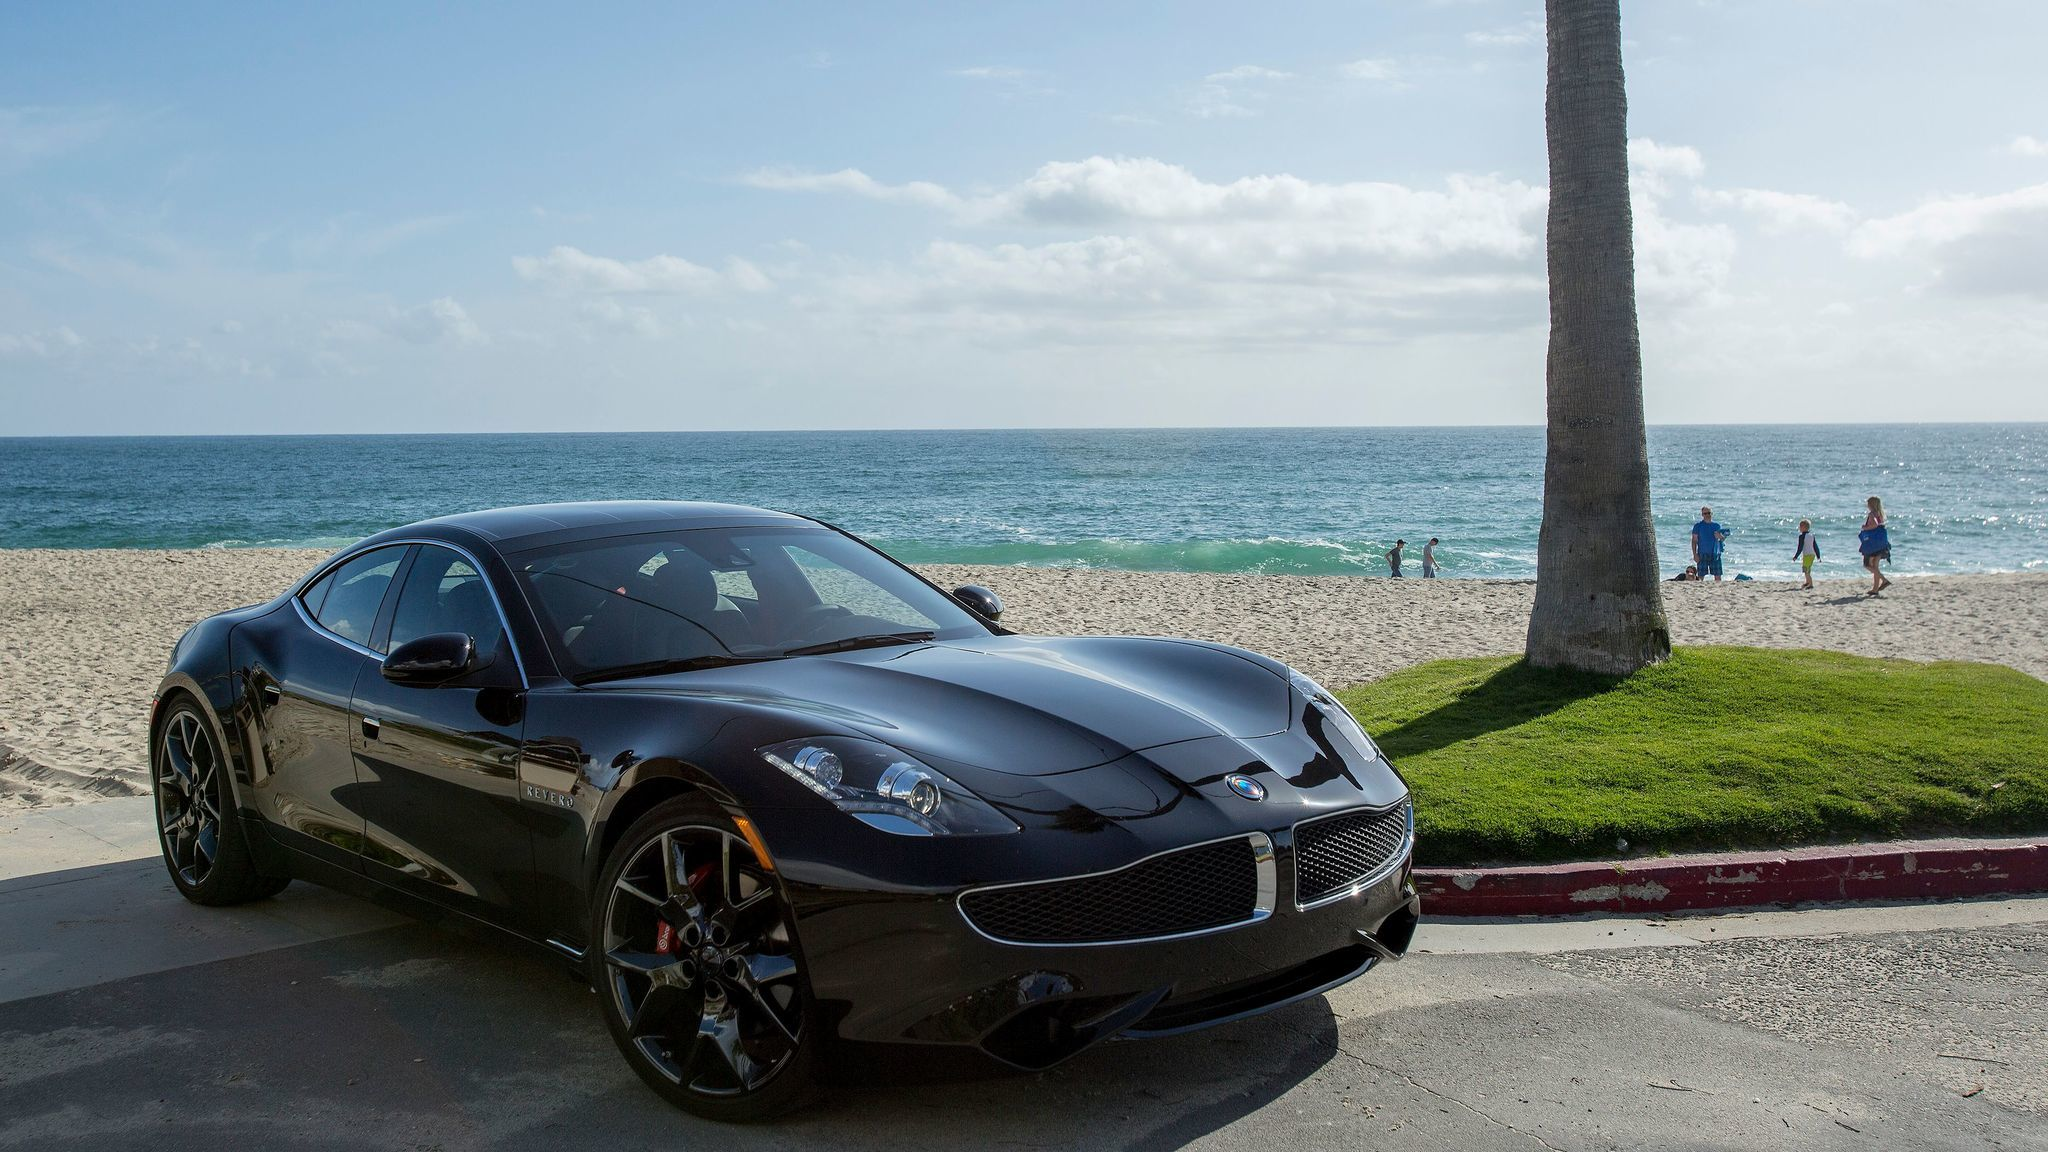 2018 karma revero is an 'ultra-luxury' hybrid - los angeles times